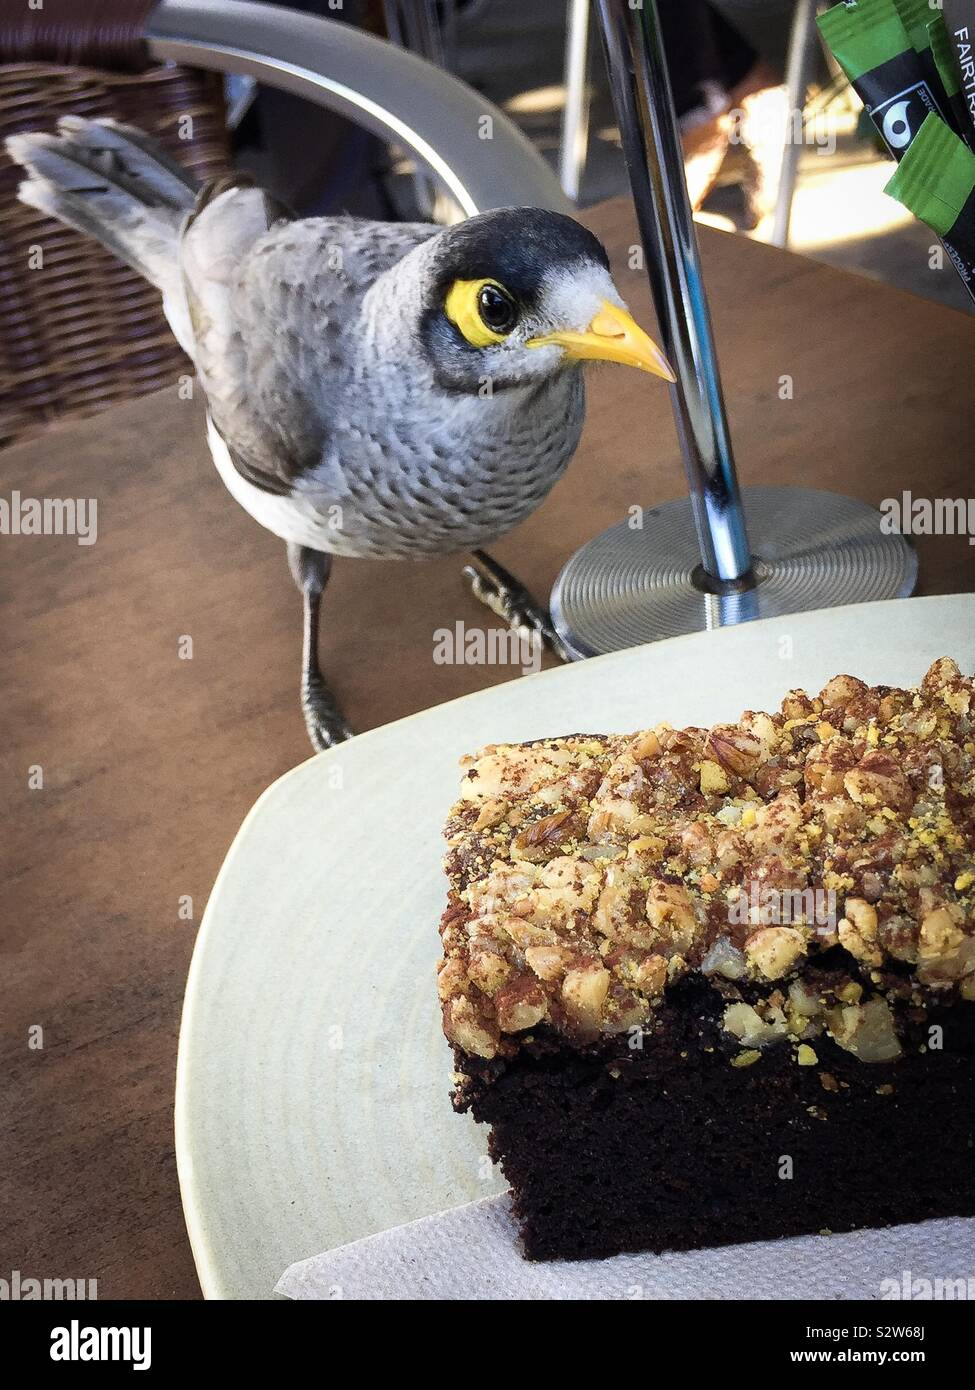 A cheeky wild bird contemplates eating the cake Stock Photo